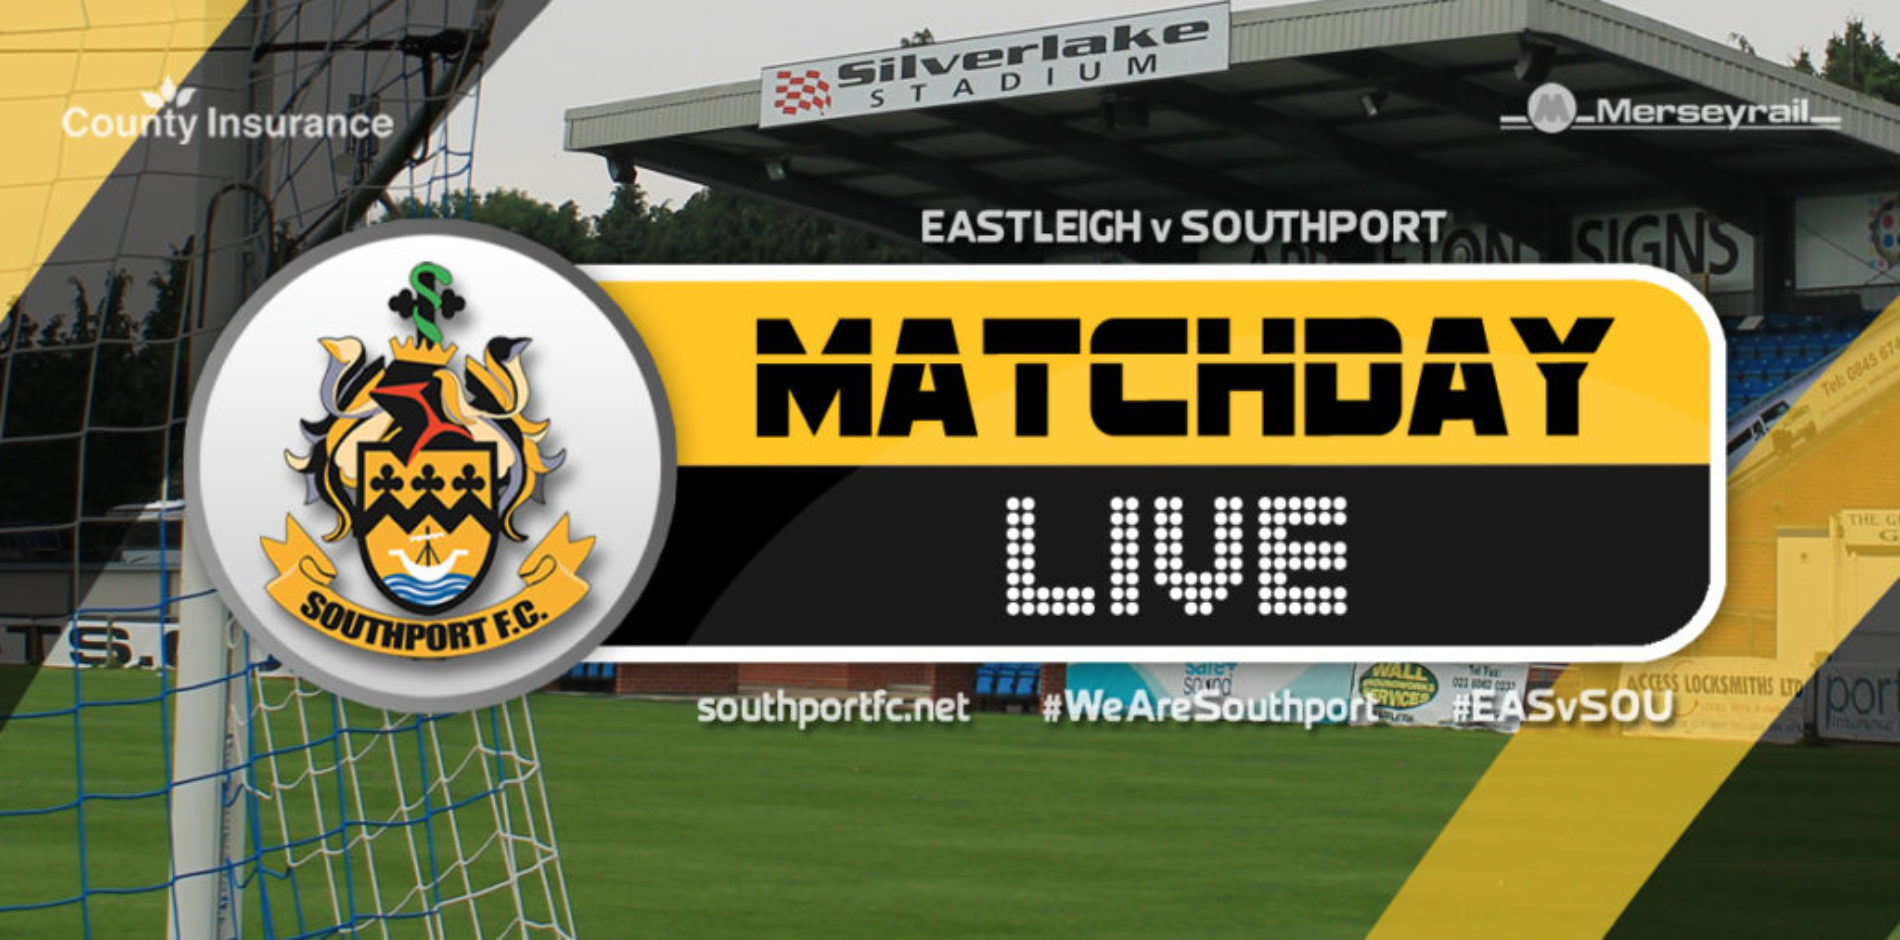 MATCHDAY LIVE | Eastleigh V Southport